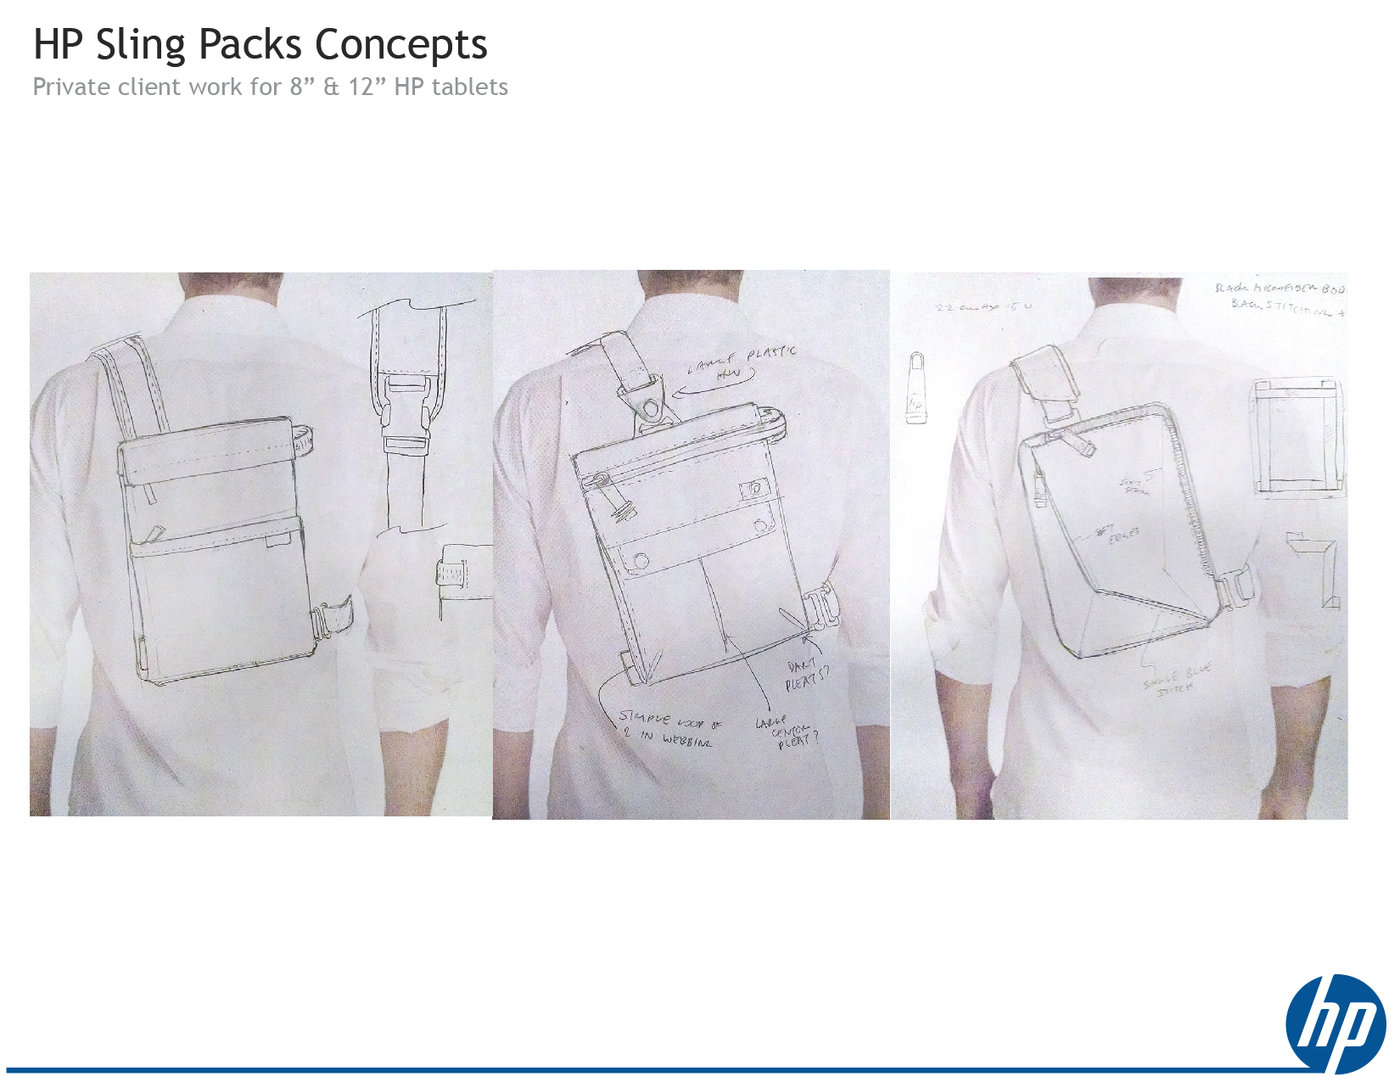 Hp Tablet Sling Concepts By Seton Spadt At Coroflot Com